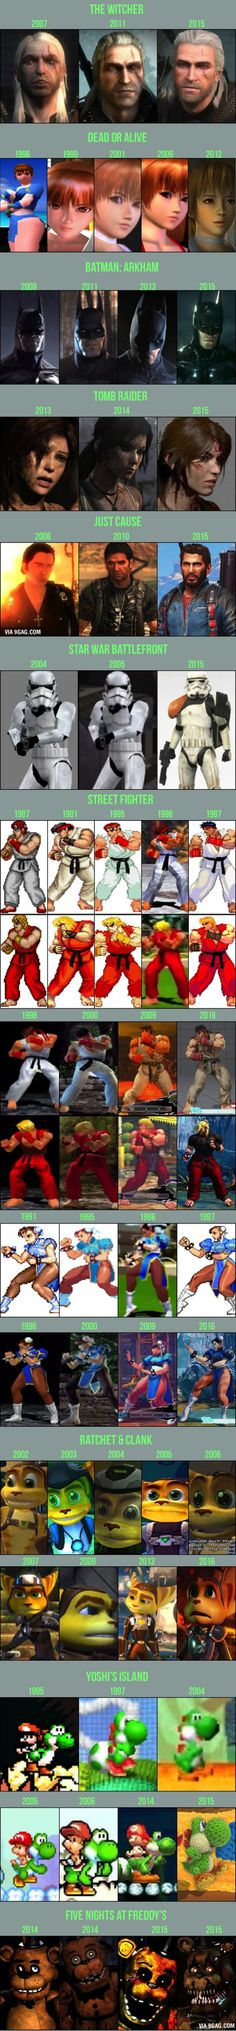 Evolution of 12 popular game characters